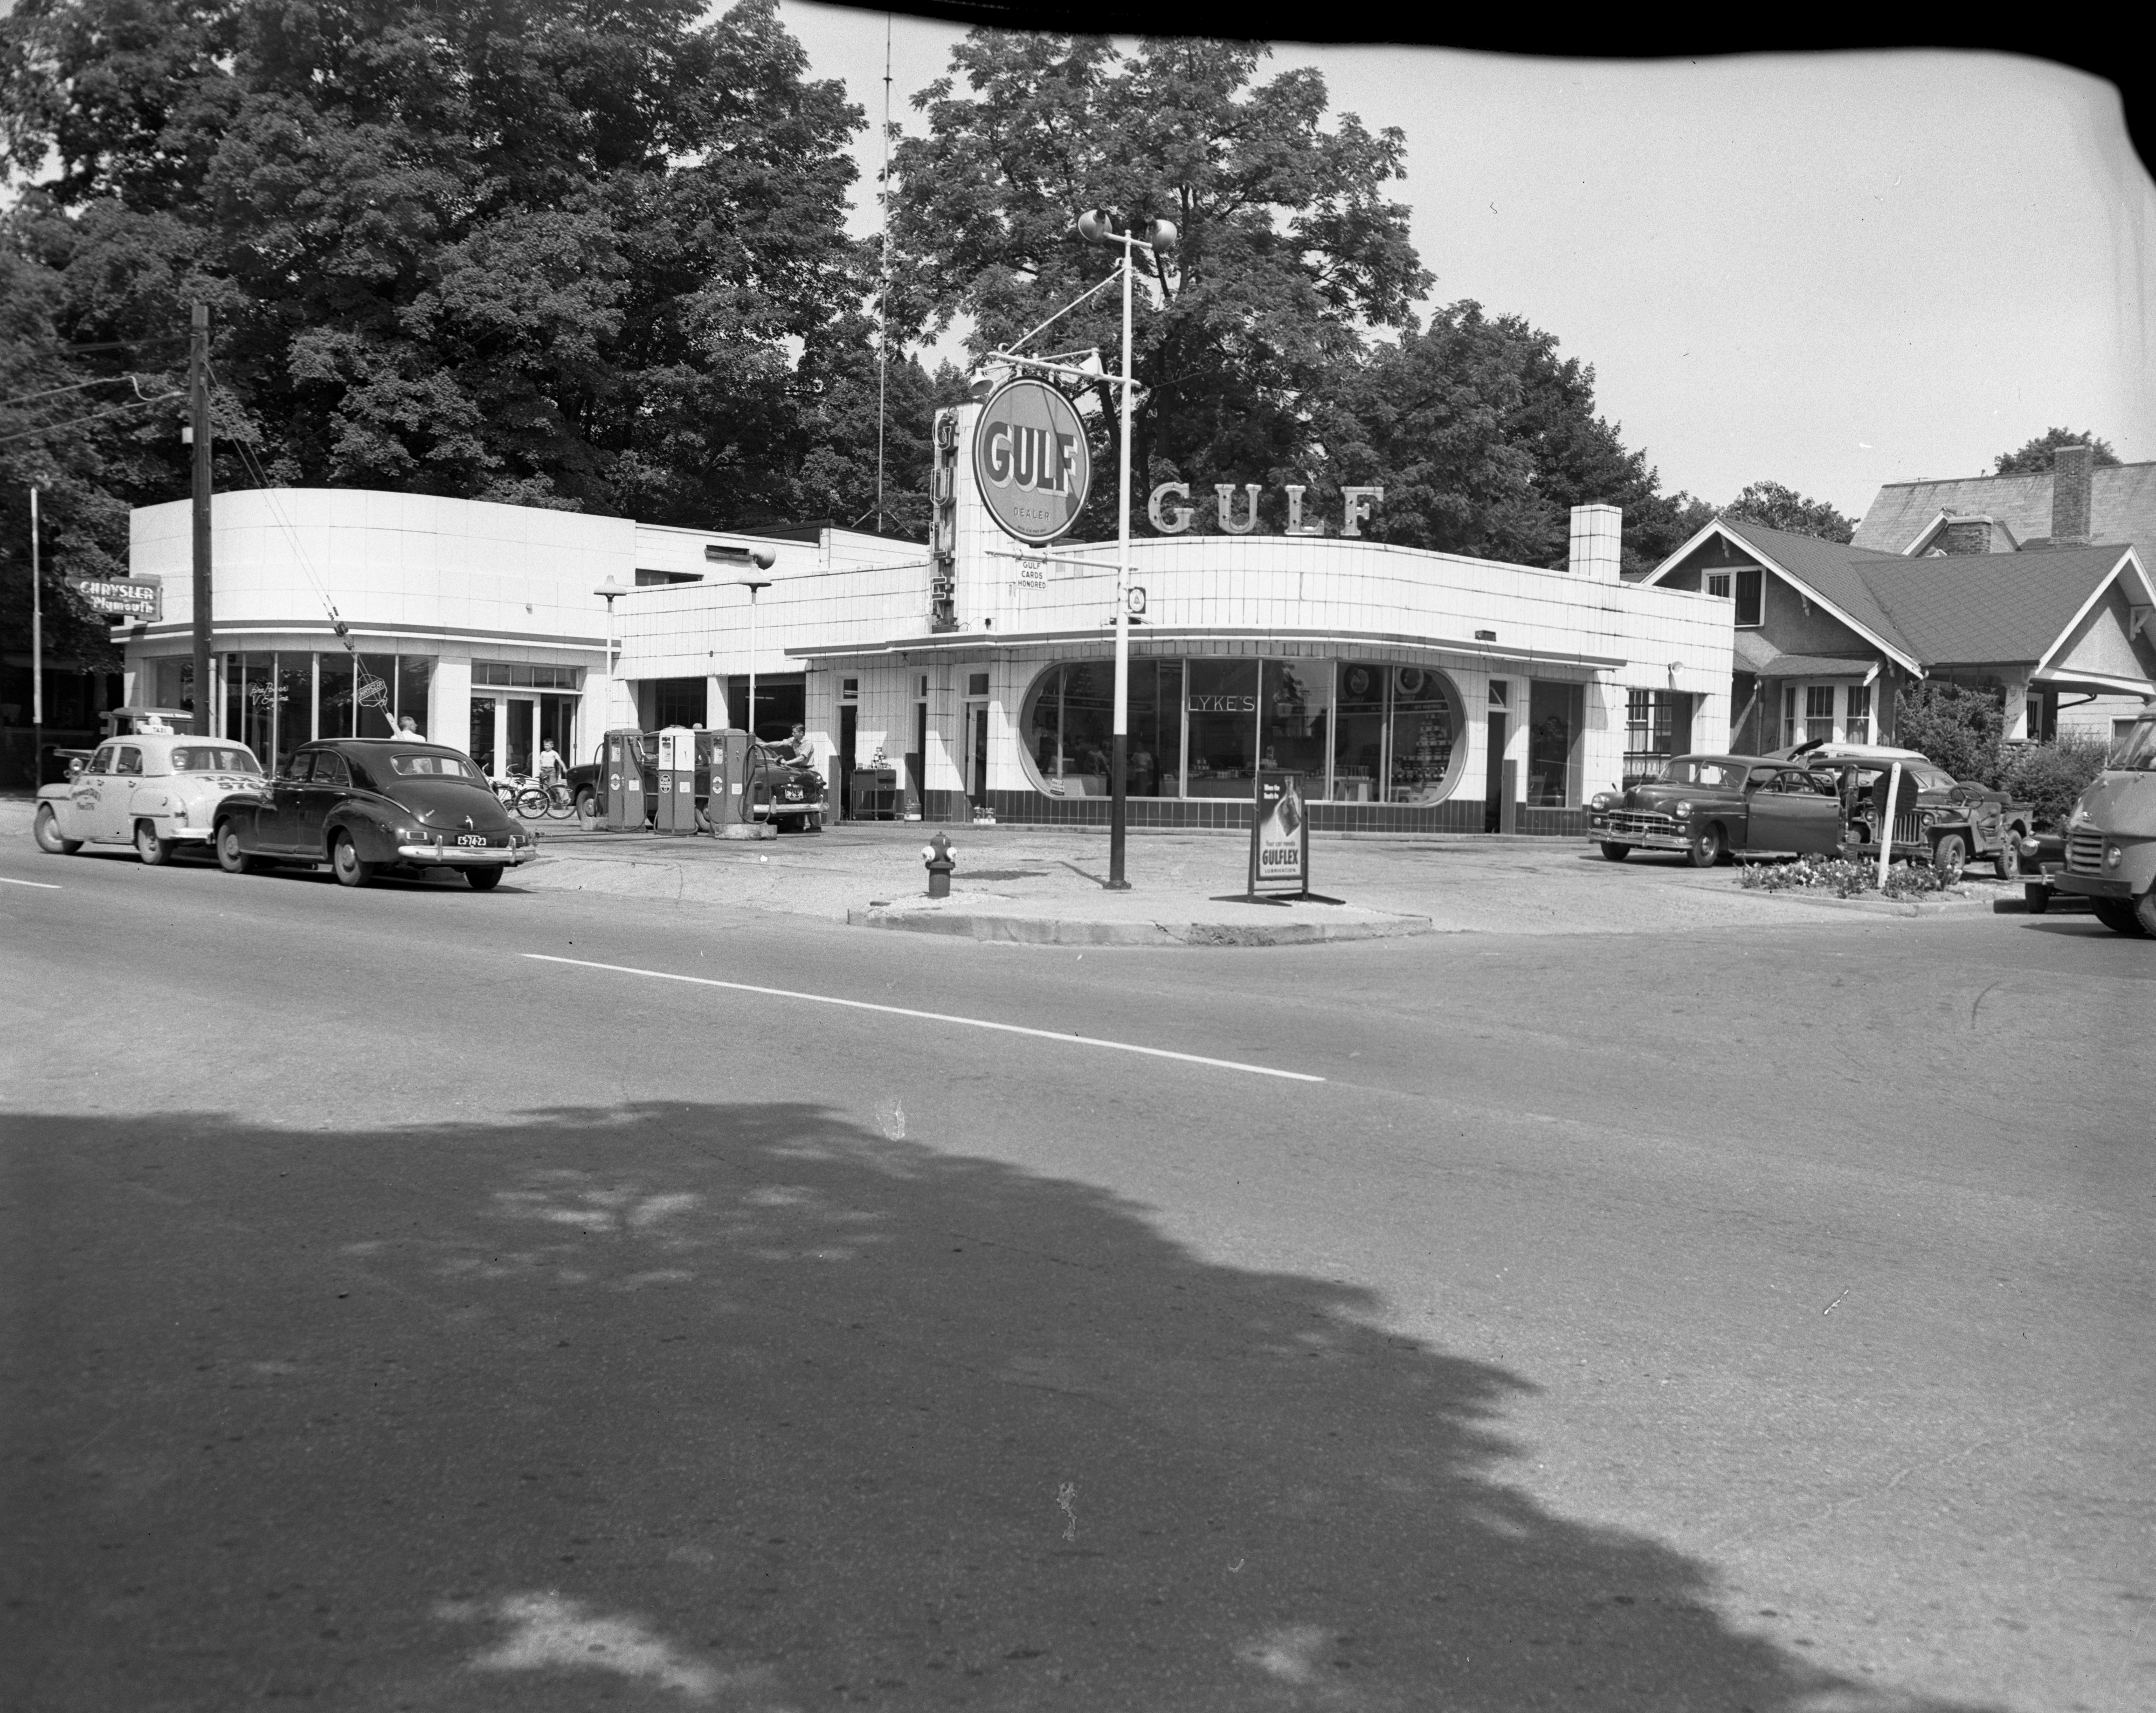 Lyke's Gulf gas station, August 1951 image